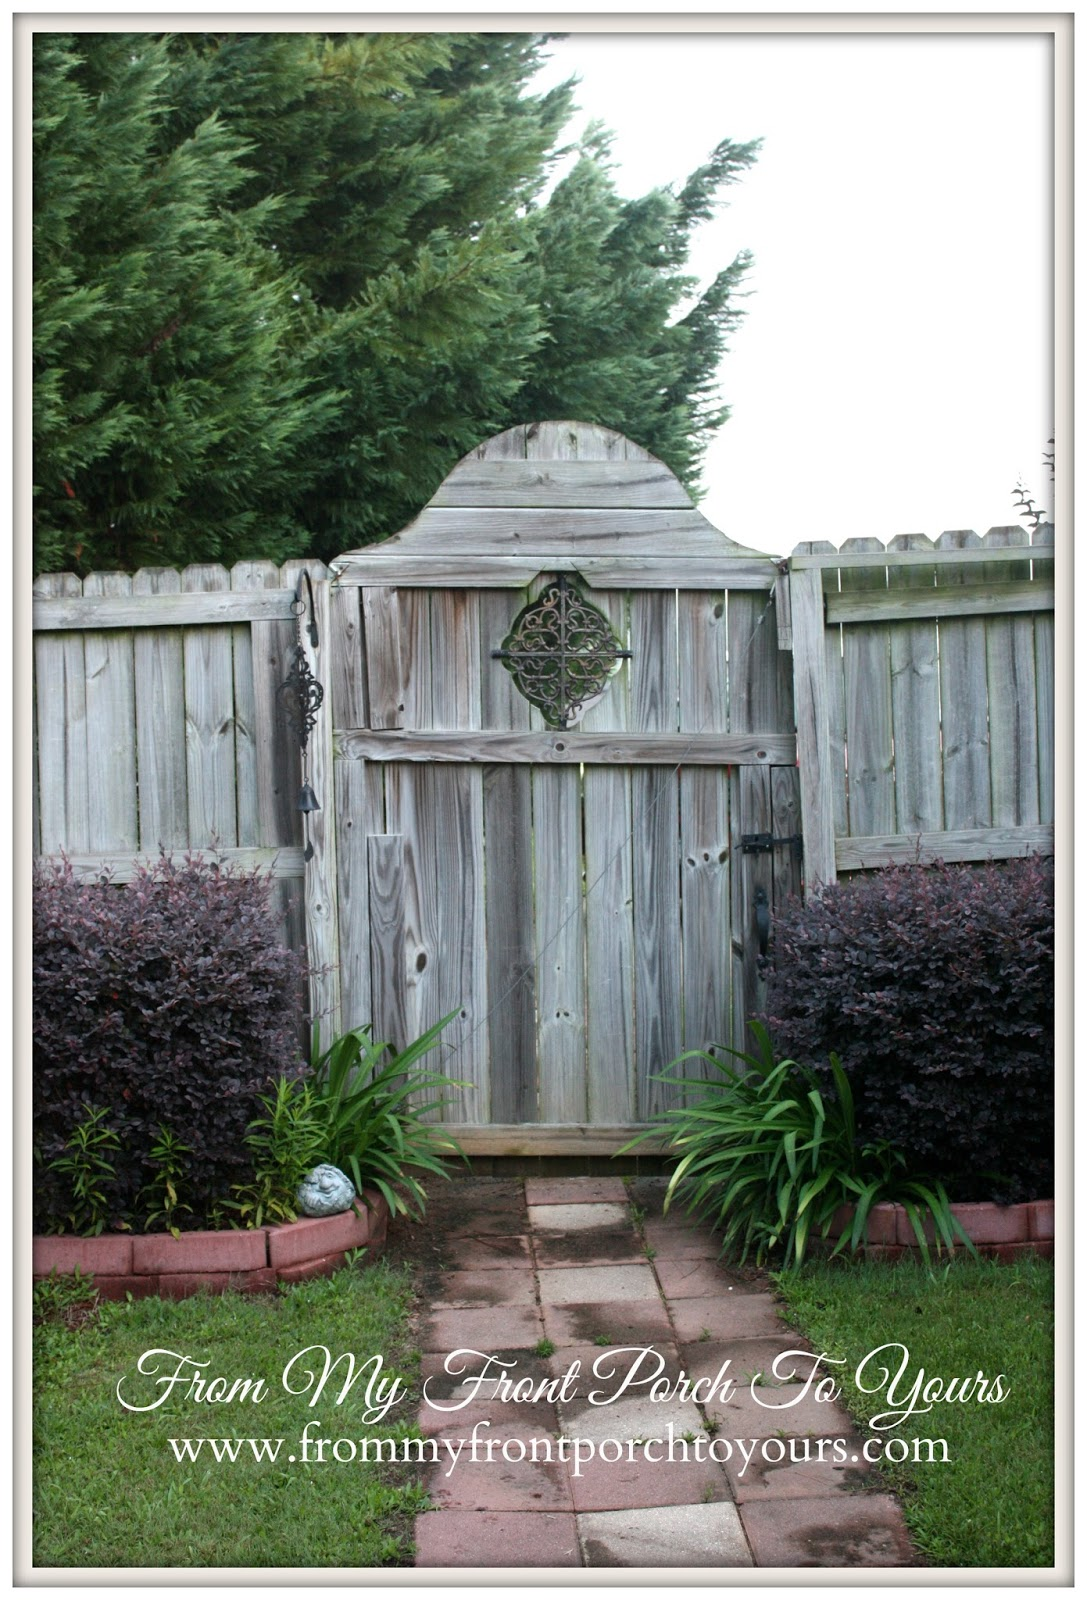 From My FRont Porch To Yours- Custom Garden Gate